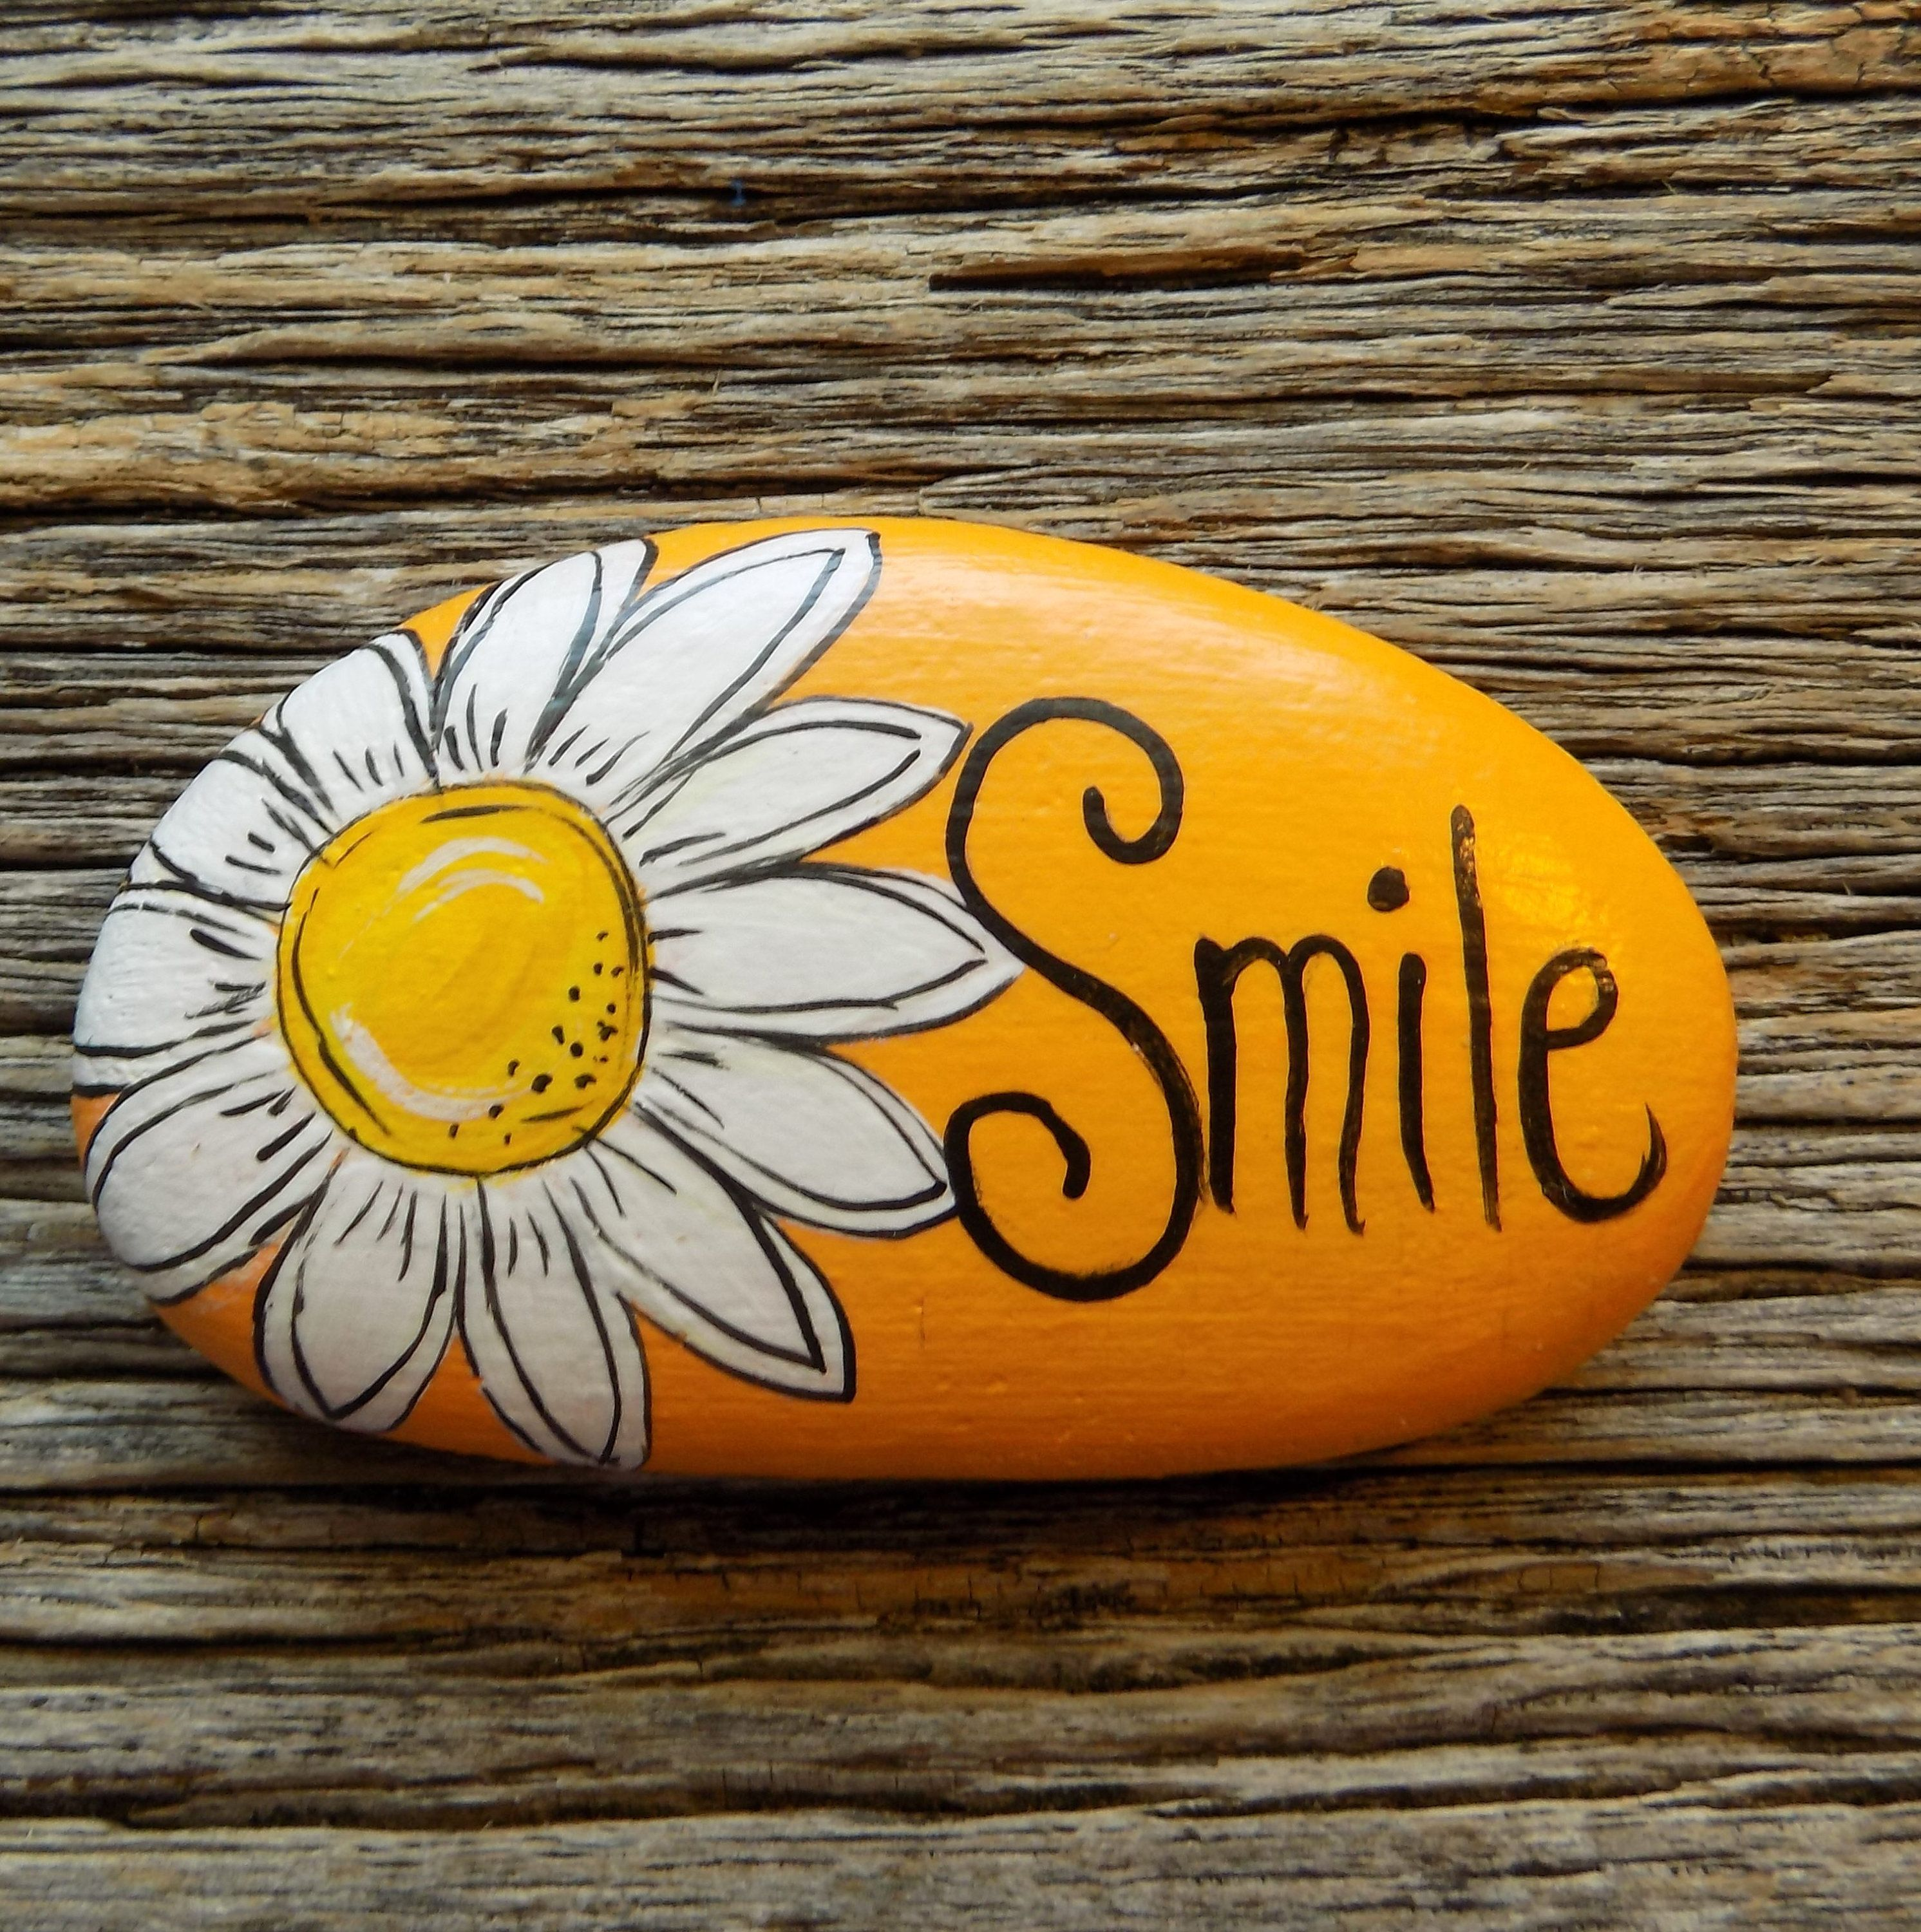 Smile Daisy Painted Rock Decorative Accent Stone Paperweight Etsy Stone Art Painting Rock Painting Tutorial Rock Painting Designs